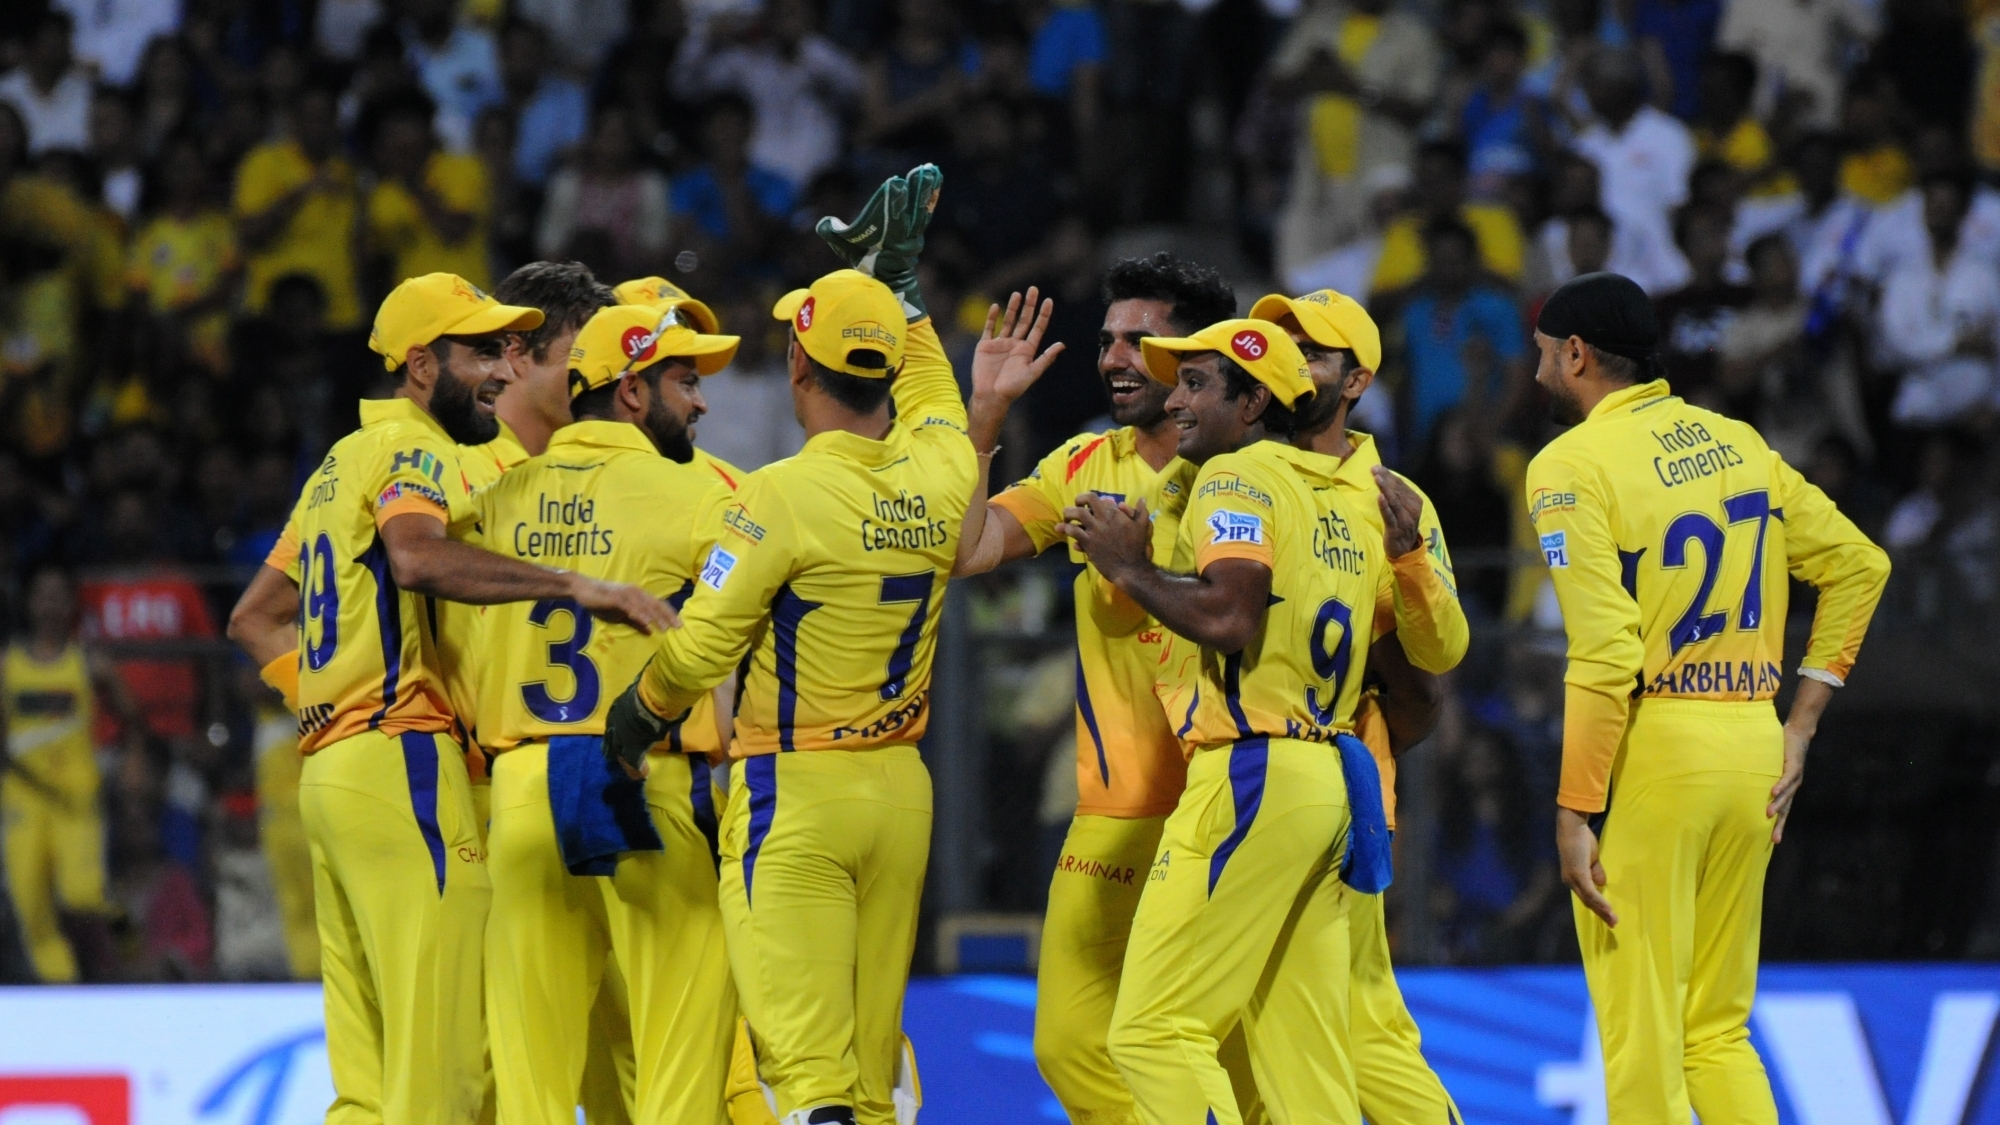 IPL 2018: Match 20- SRH vs CSK : Talking points from the game